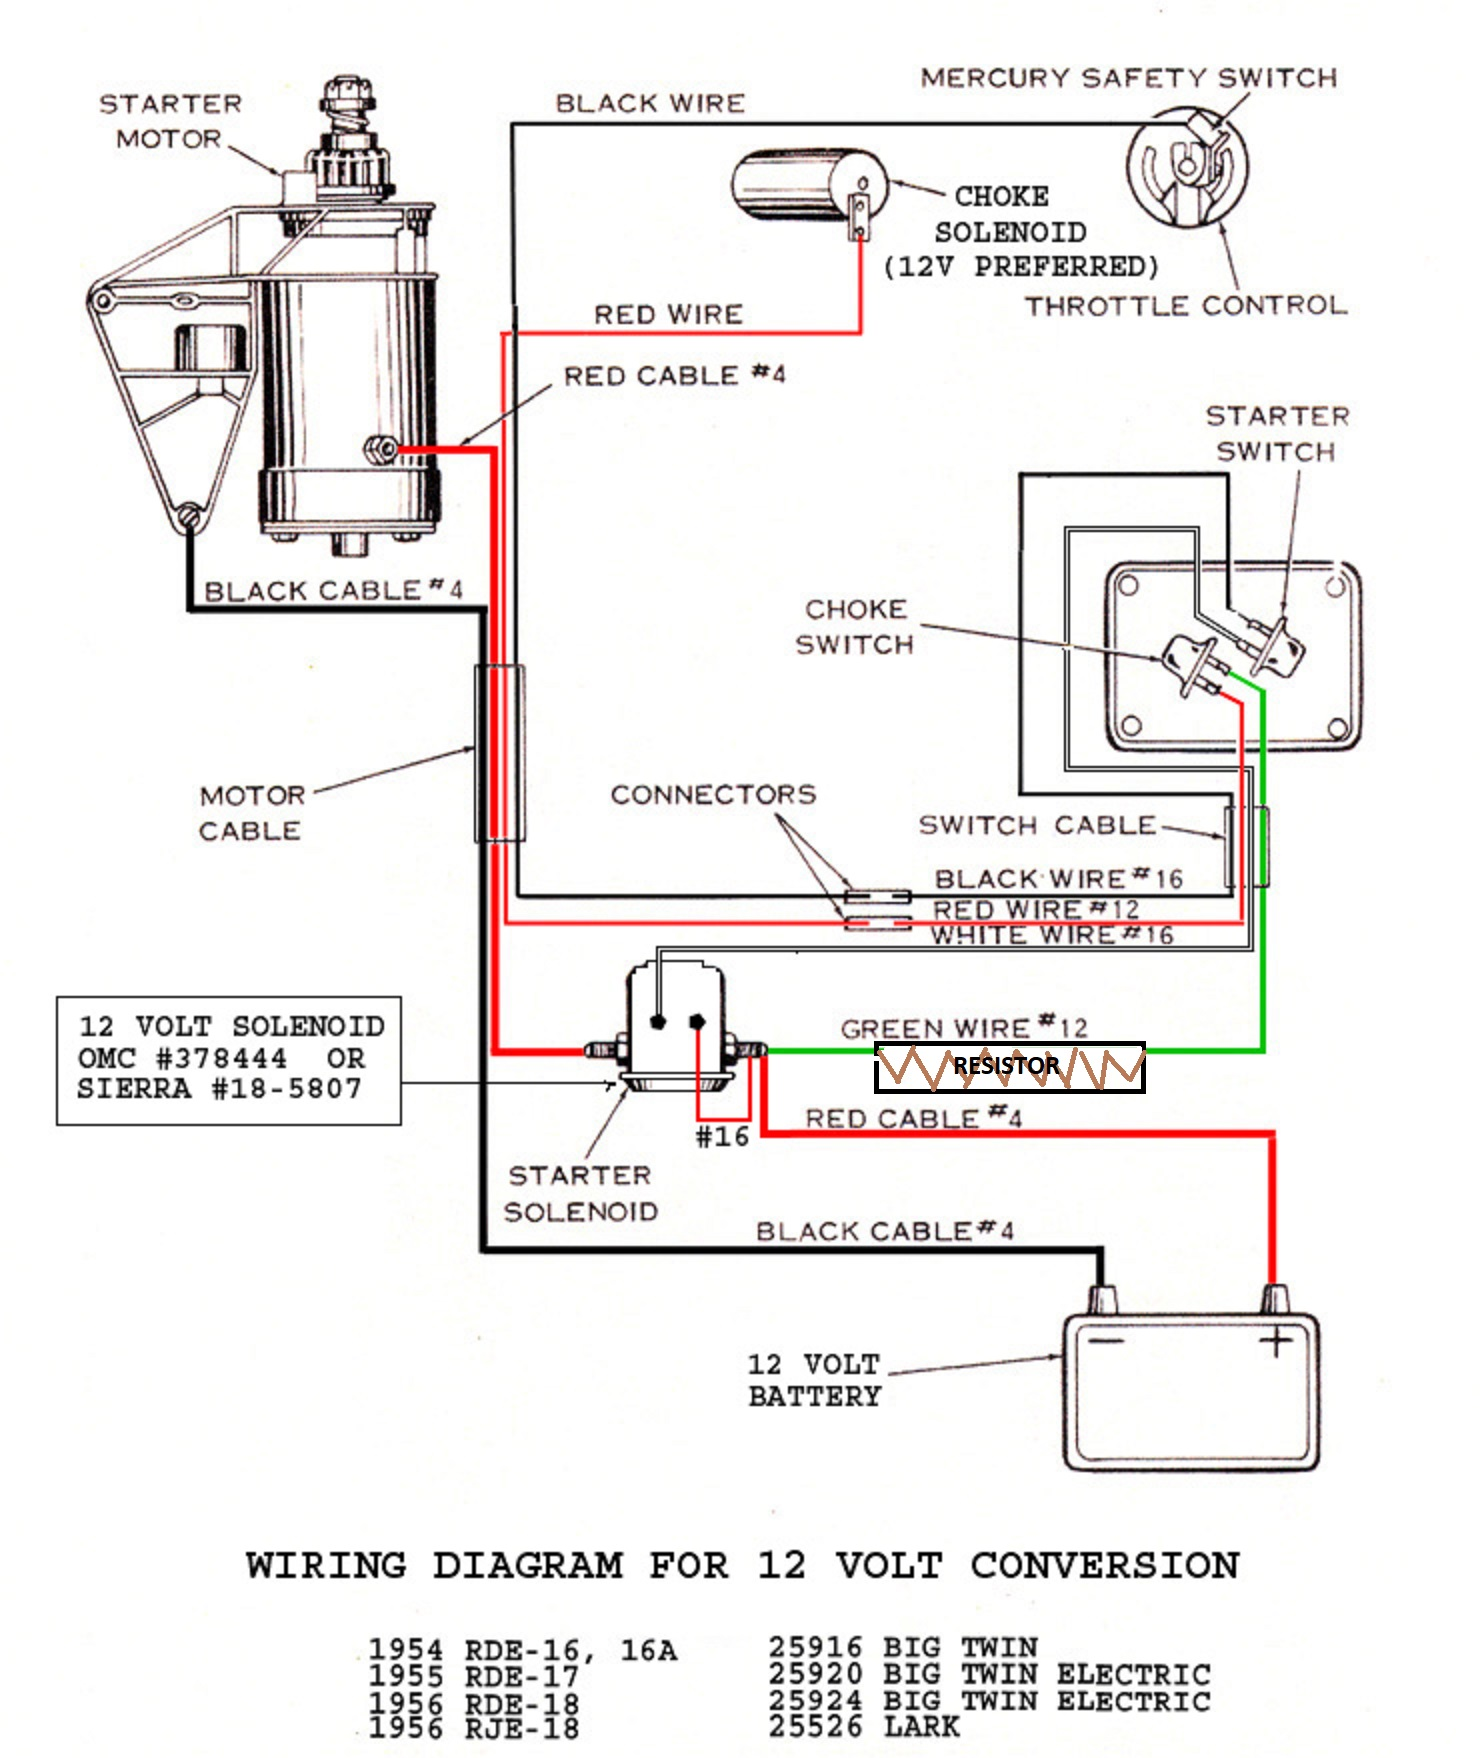 Testing Solenoids – Antique Outboard Motor Club,Inc on farmall m 12v wiring diagram, 12 volt battery to 24 volt diagram, 12 volt conversion guide, 12 volt conversion farmall h, 24 volt system wiring diagram, volt gauge wiring diagram, 12 volt battery wiring, 12 volt 6 volt converter, 12 volt voltage regulator diagram, 12 volt conversion wiper motor, 12 volt tractor conversion, 12 volt alternator conversion, 12 volt 8n alternator install, 12 volt to 6 volt, 12 volt conversion ford, farmall super h wiring diagram, heater wiring diagram, 12 volt to 3 volt converter, 12 volt charging system diagram, 8n 12 volt conversion diagram,